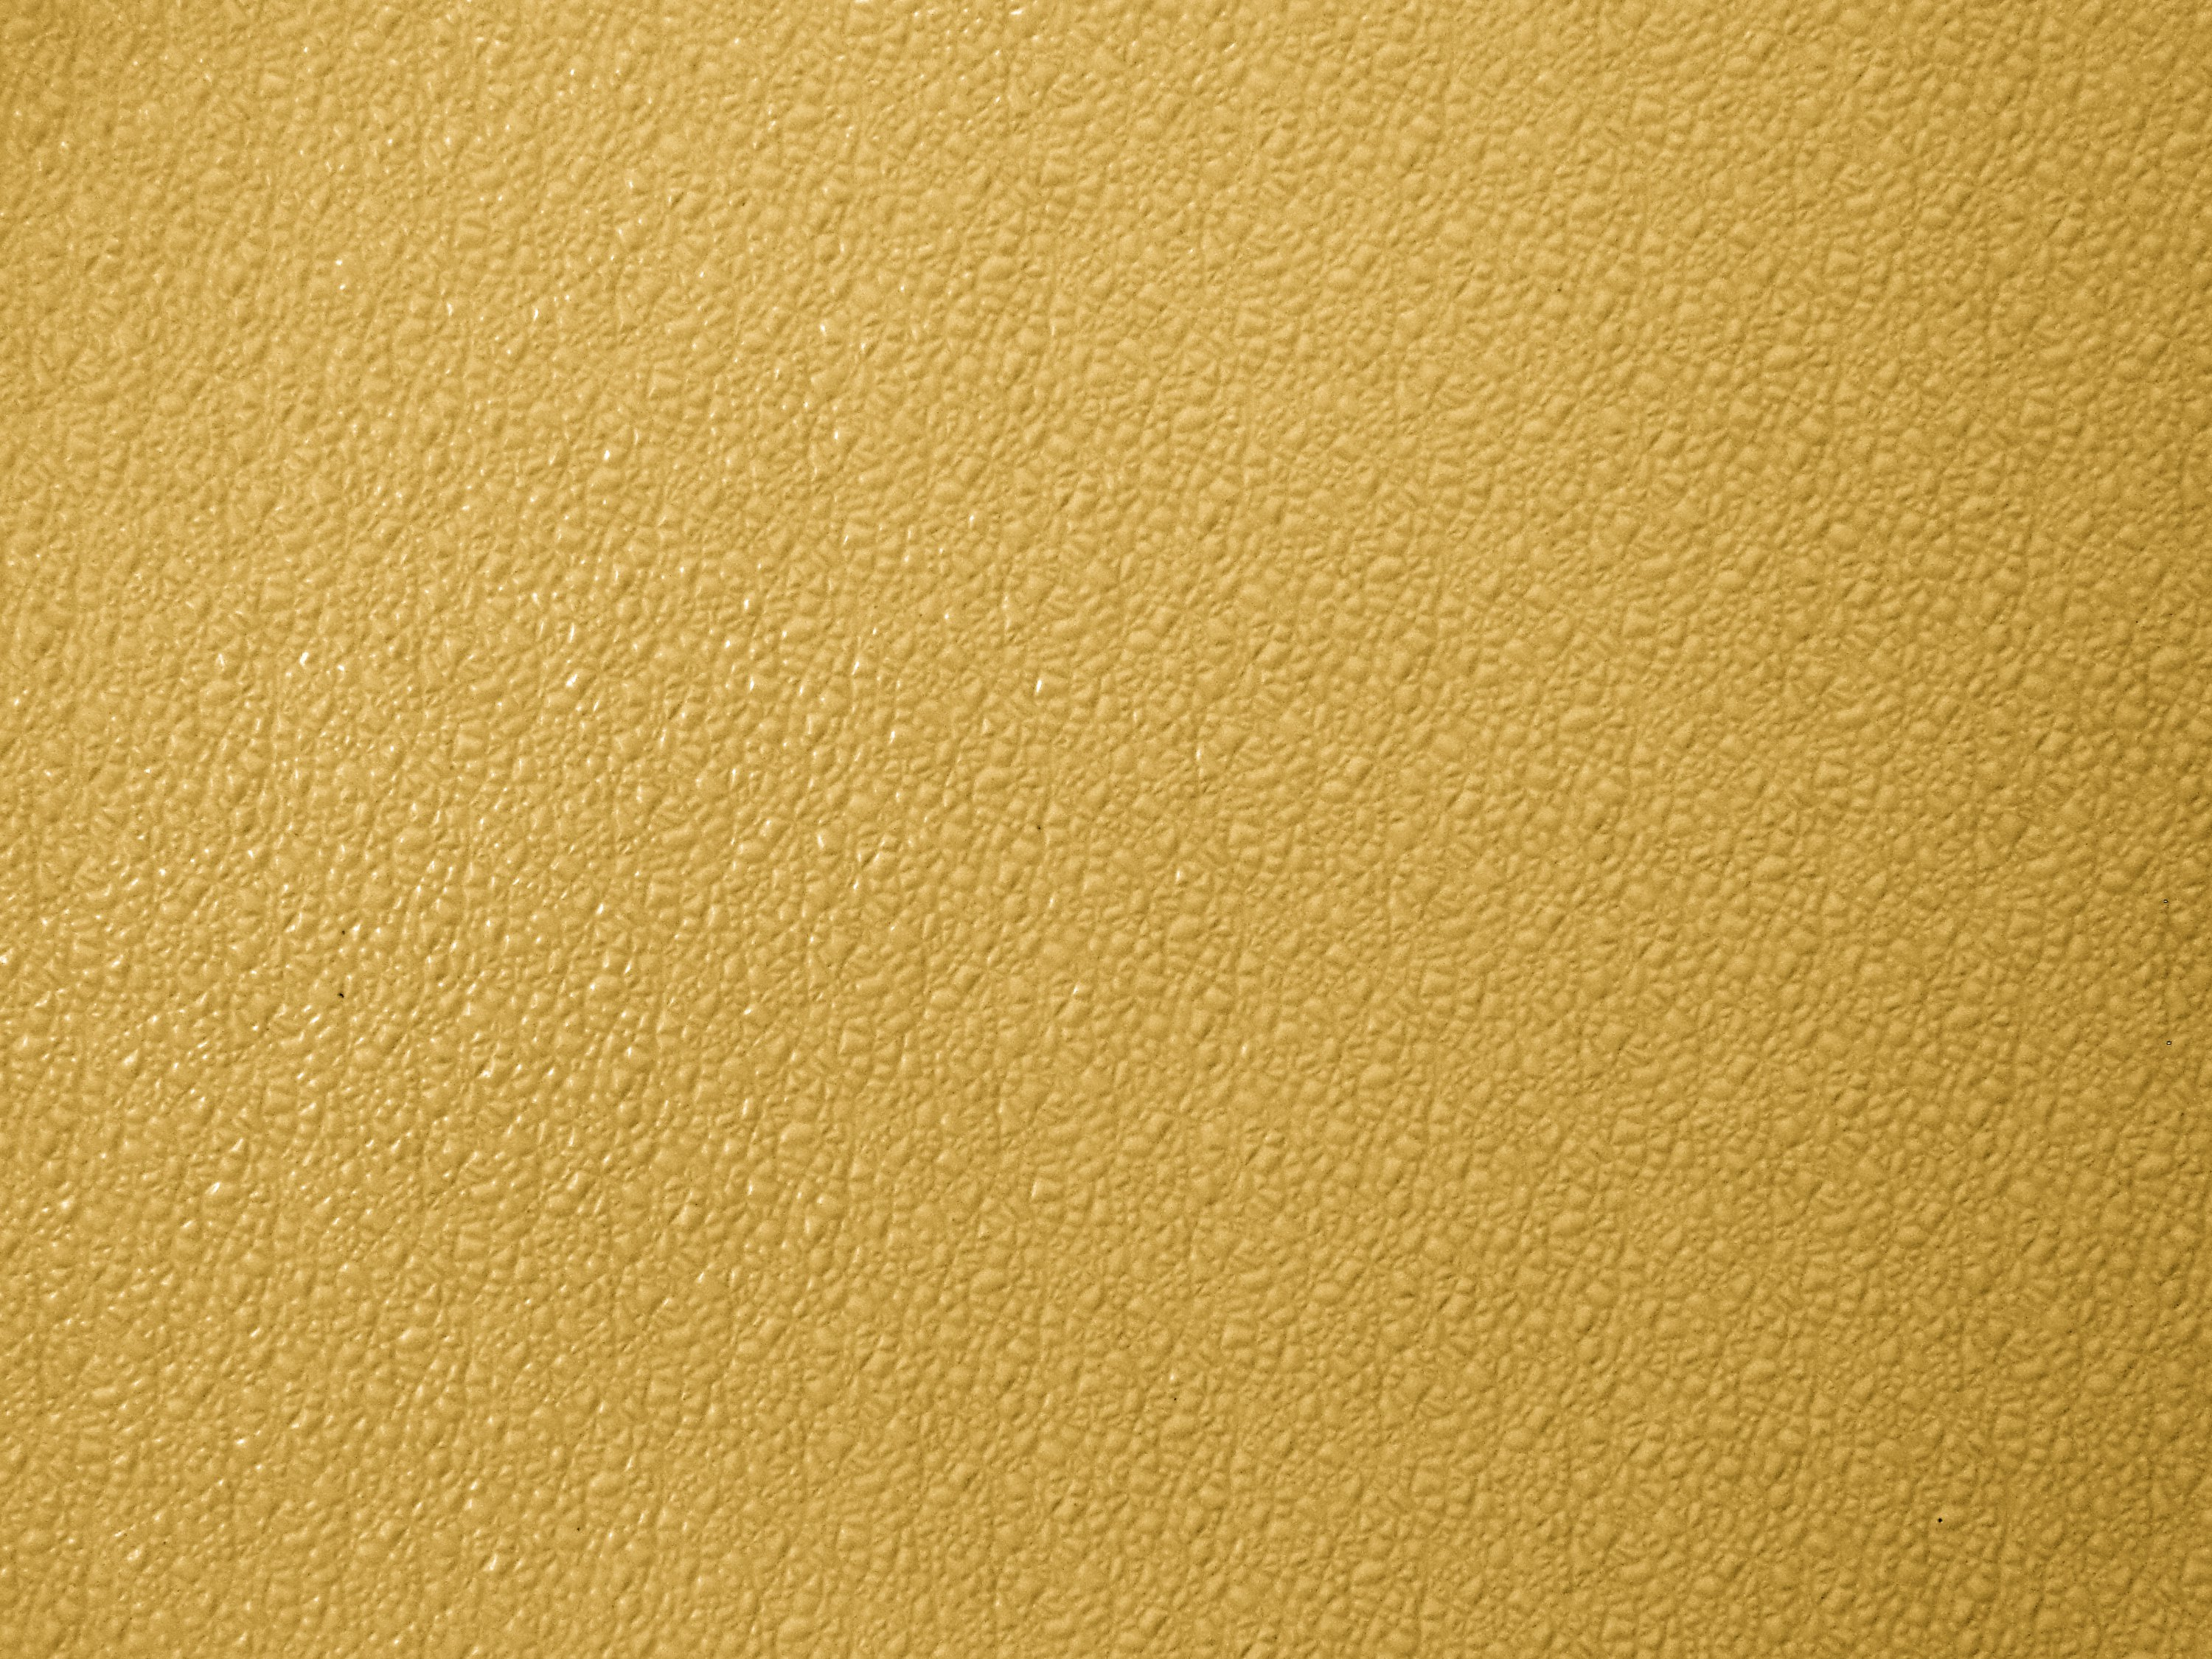 Bumpy Mustard Yellow Plastic Texture Picture Free